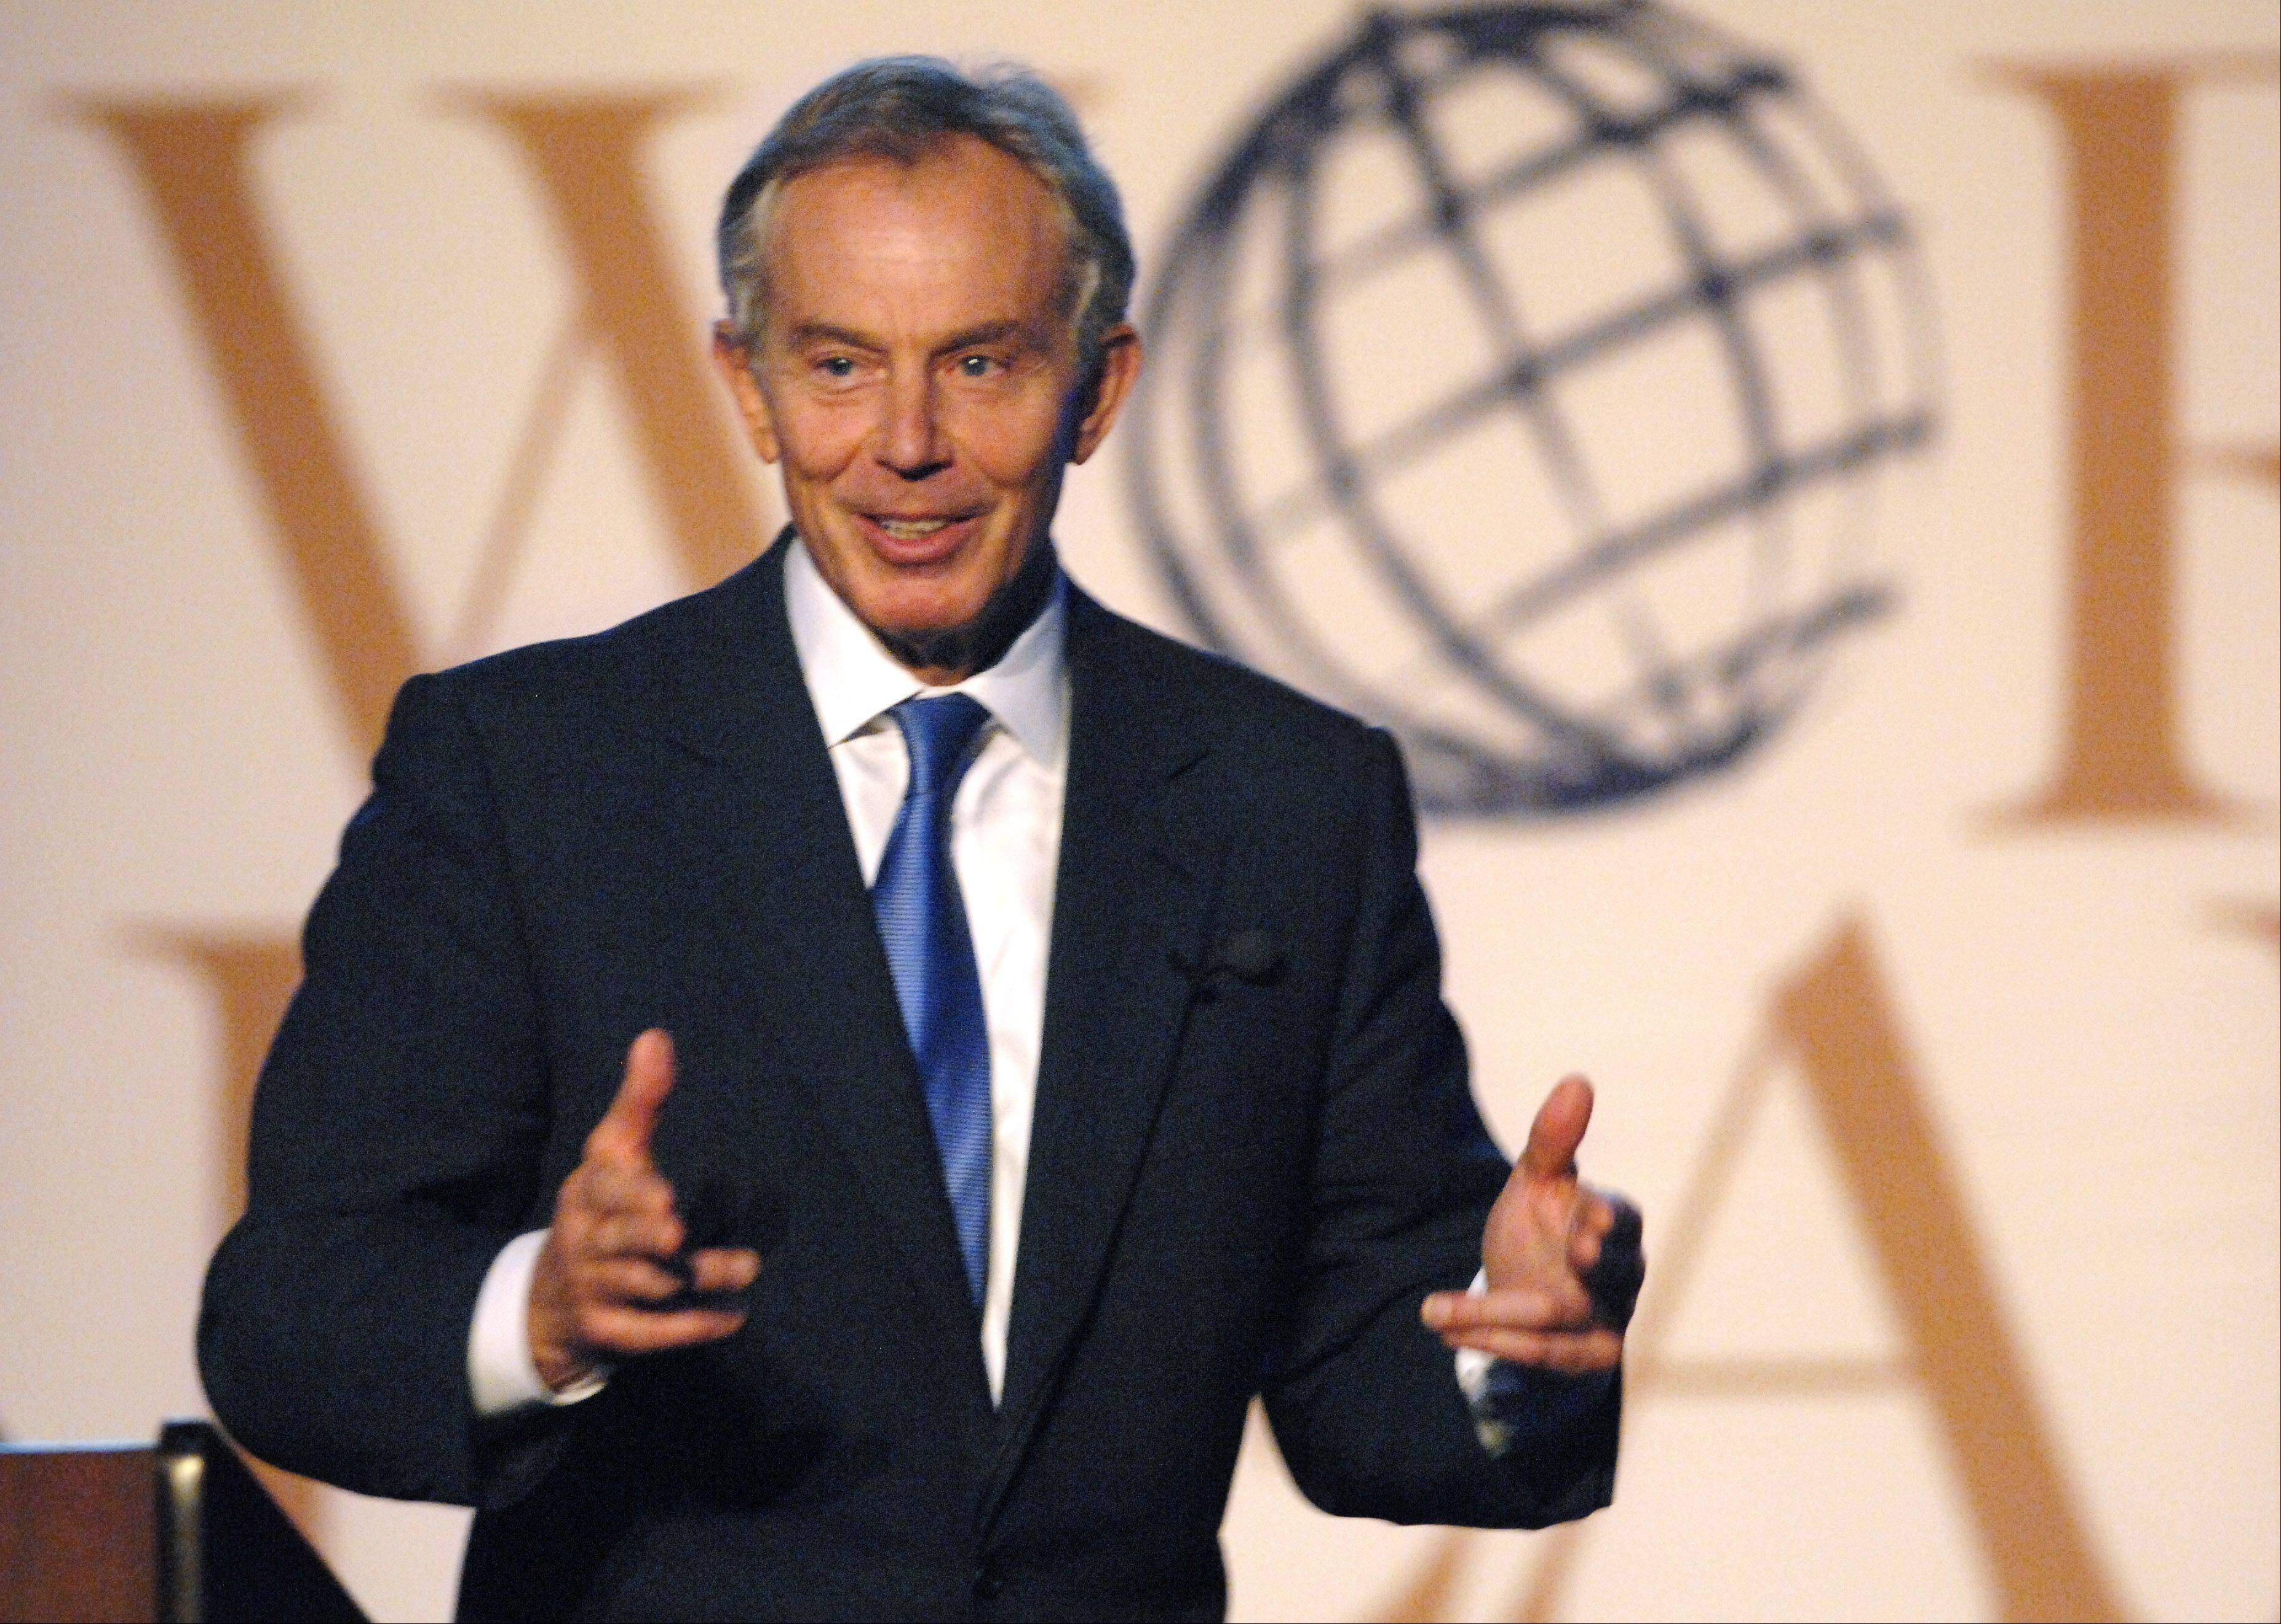 Tony Blair inspires during Judson University visit